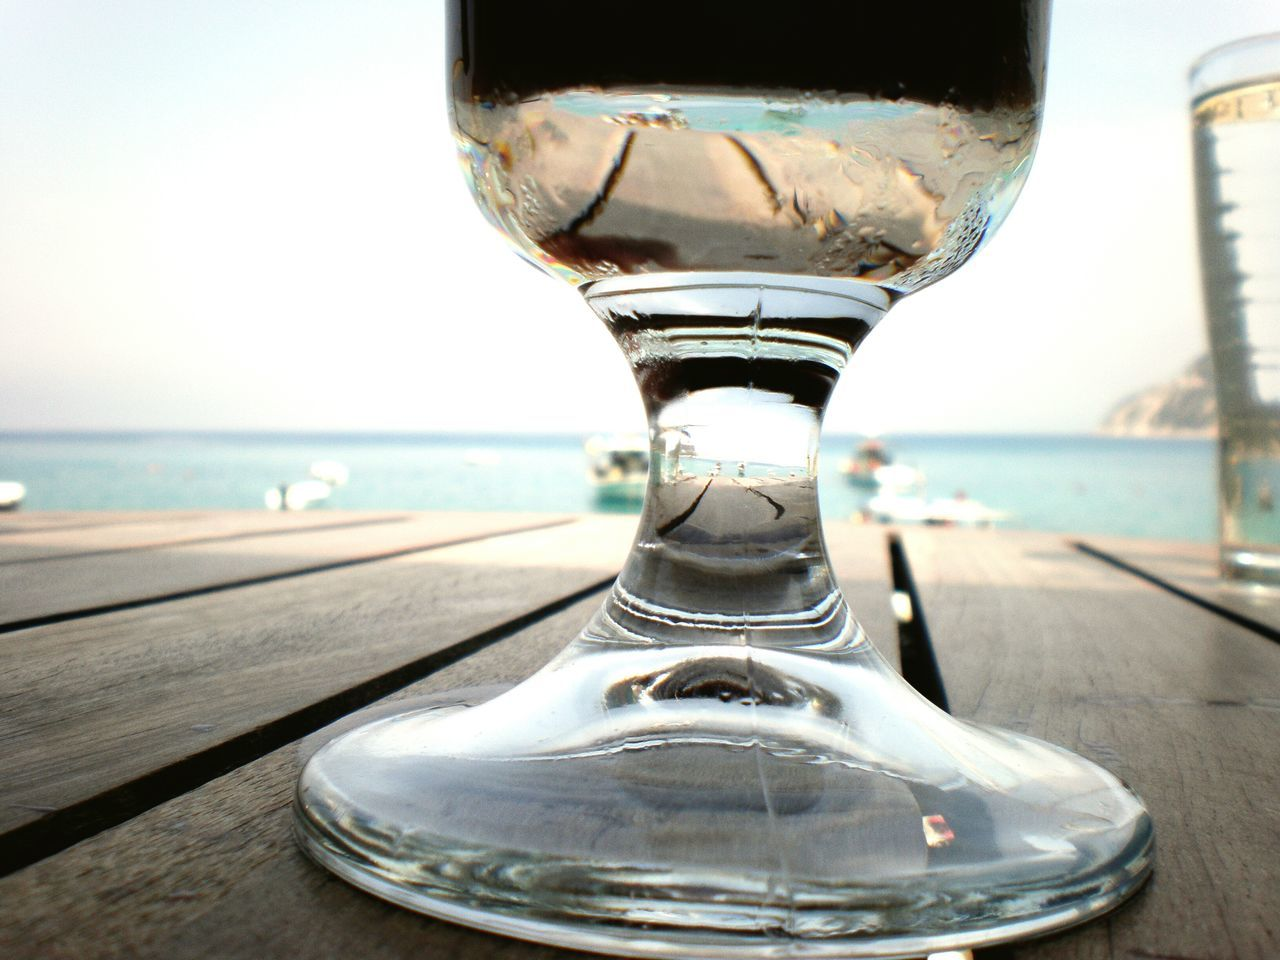 water, transparent, glass - material, sea, close-up, focus on foreground, indoors, table, drinking glass, glass, transportation, no people, day, drink, sky, horizon over water, clear sky, refreshment, empty, window